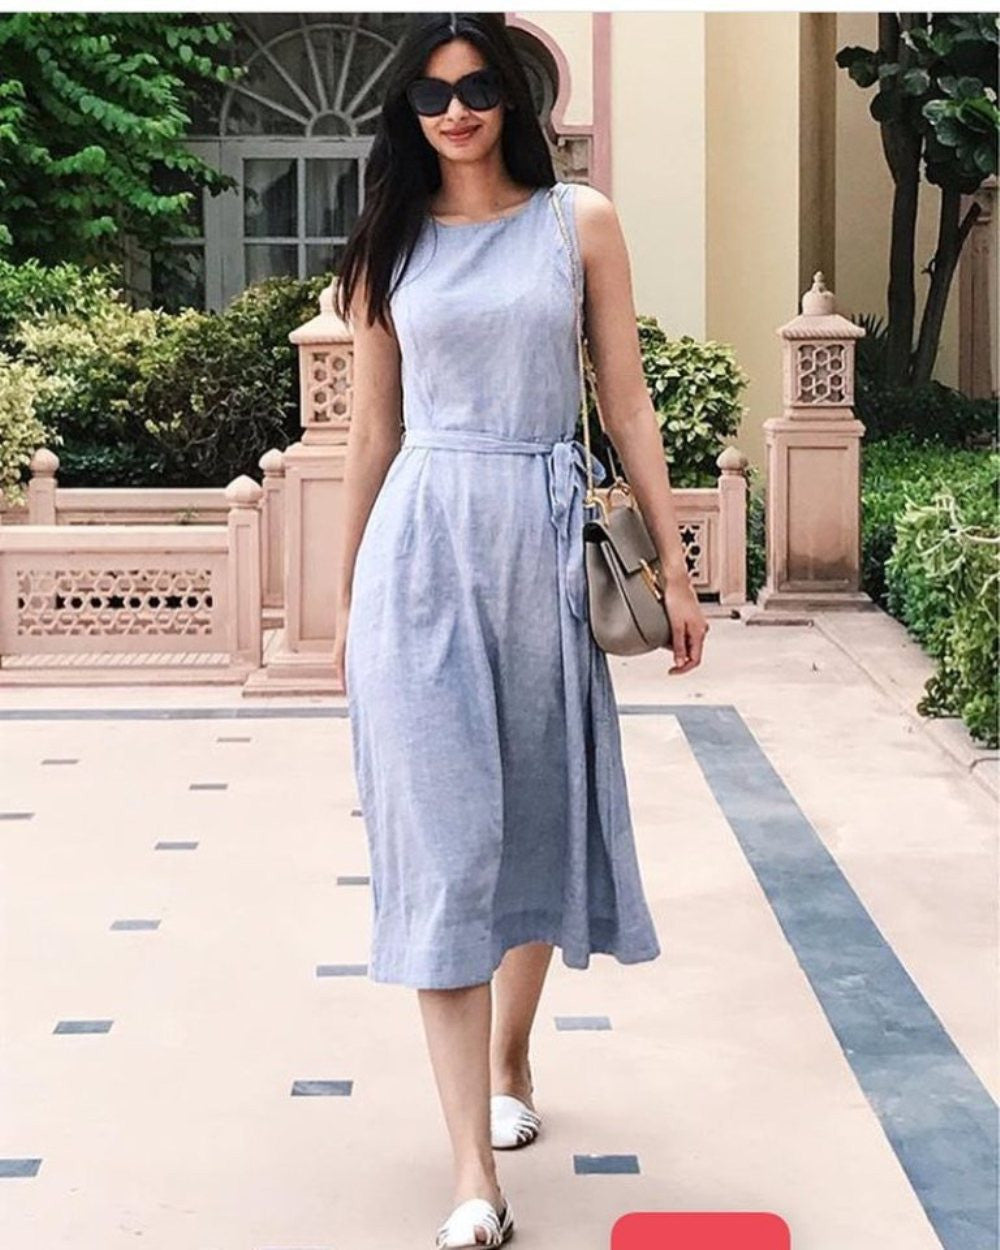 Diana Penty Set A New Summer Fashion Trend